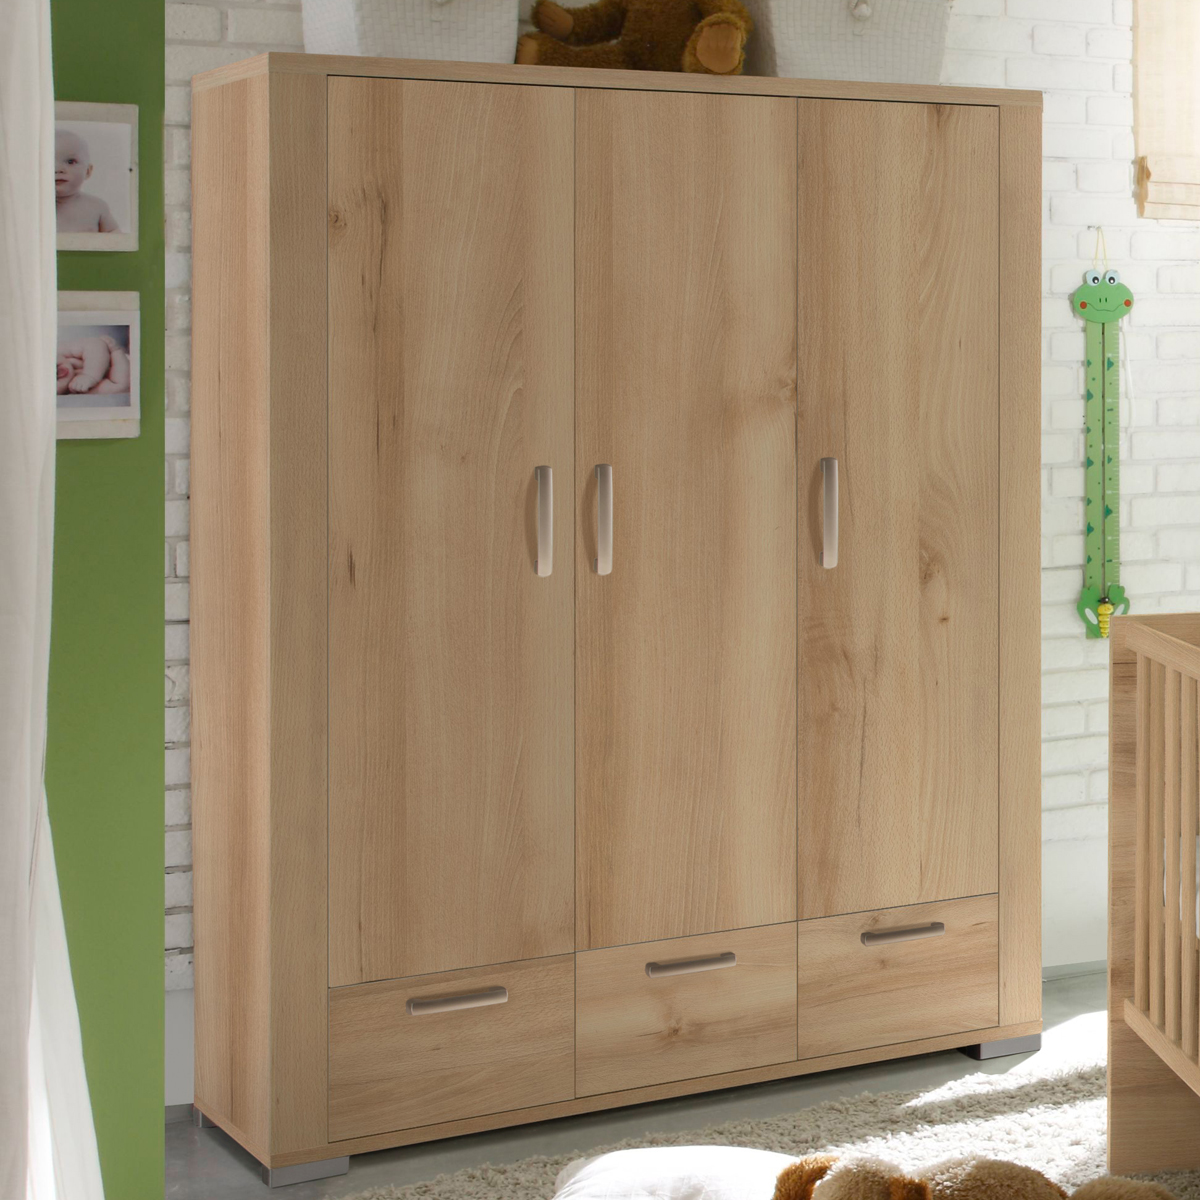 kleiderschrank ziggo babyzimmer schrank in edelbuche dekor 3 t rig ebay. Black Bedroom Furniture Sets. Home Design Ideas